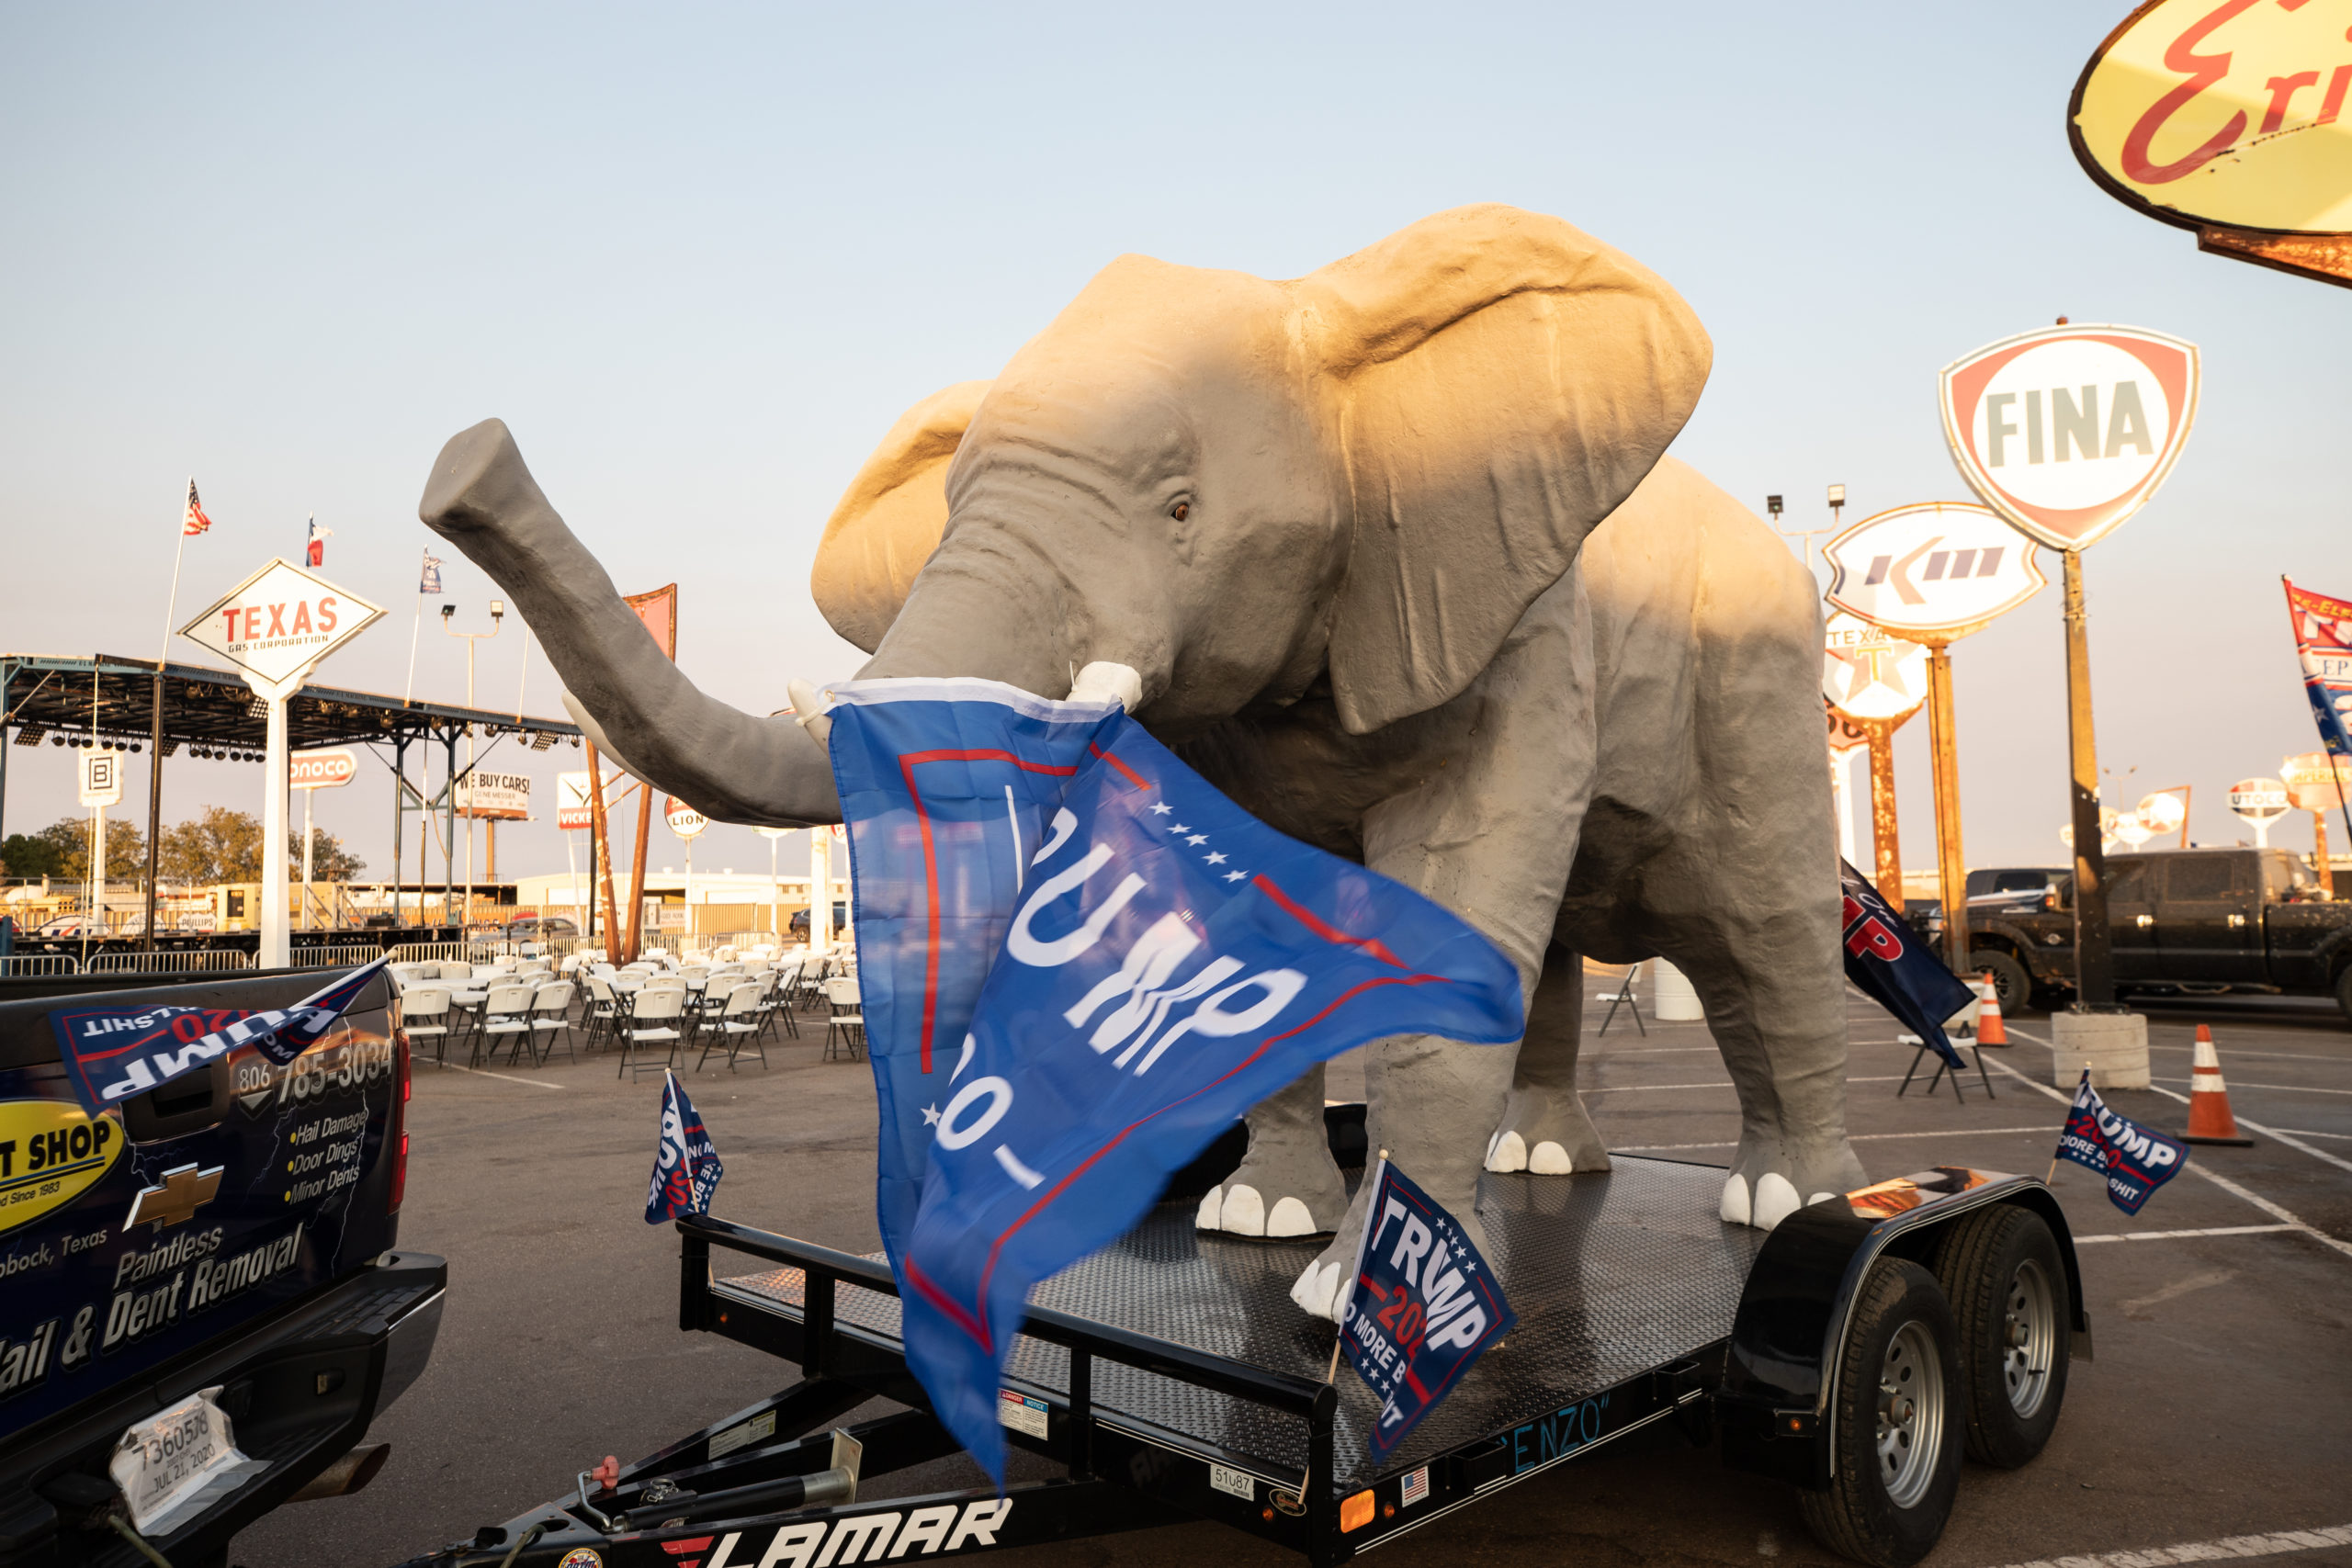 """A truck pulled a large elephant on a trailer with multiple Trump flags attached during a """"Trump Train"""" car parade in Lubbock, Texas, on Sunday, Oct. 18, 2020. (Kaylee Greenlee - DCNF)"""